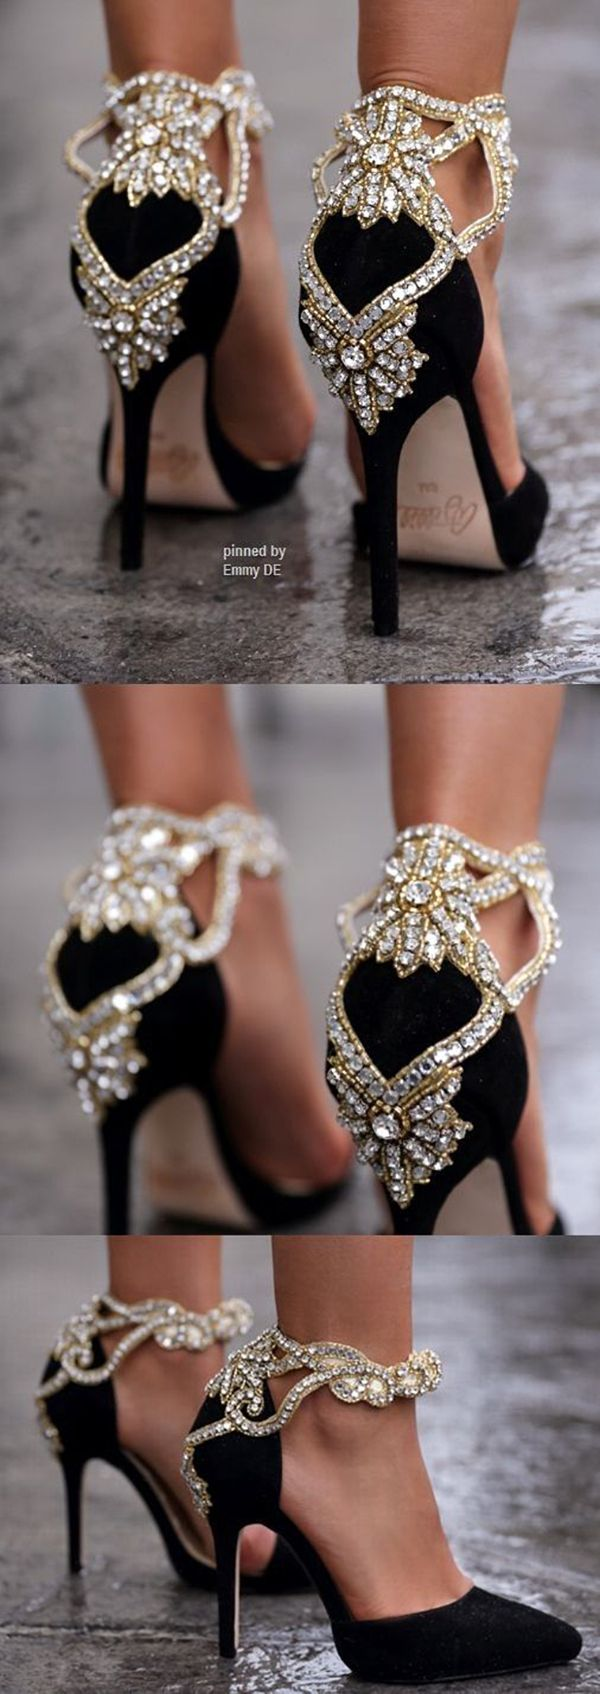 Handmade luxury shoes. #shoes #luxury #beauty See more at http://memoir.pt/